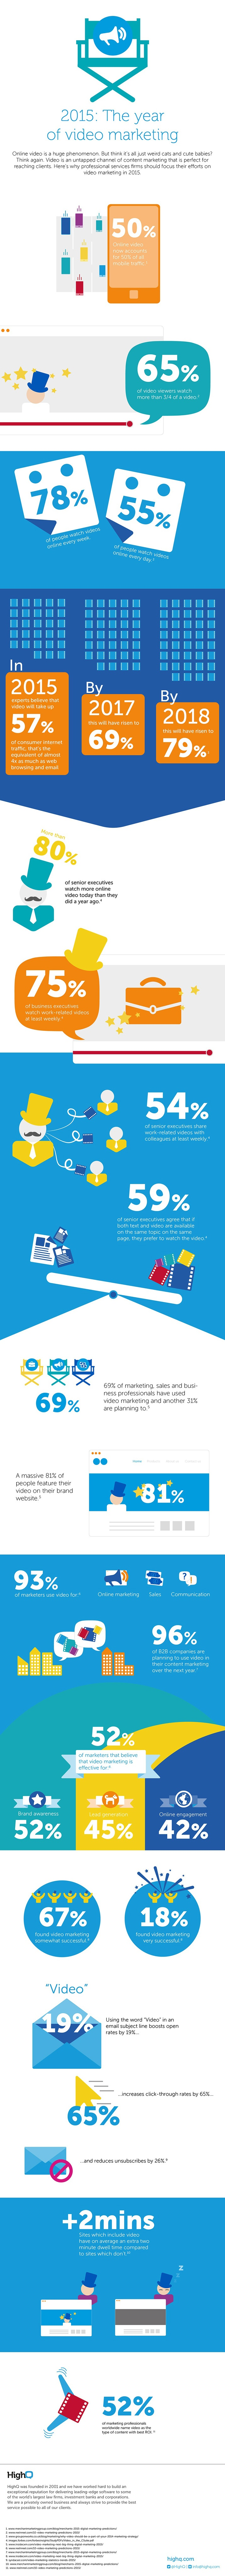 Video Marketing Statistics for 2015 [INFOGRAPHIC]